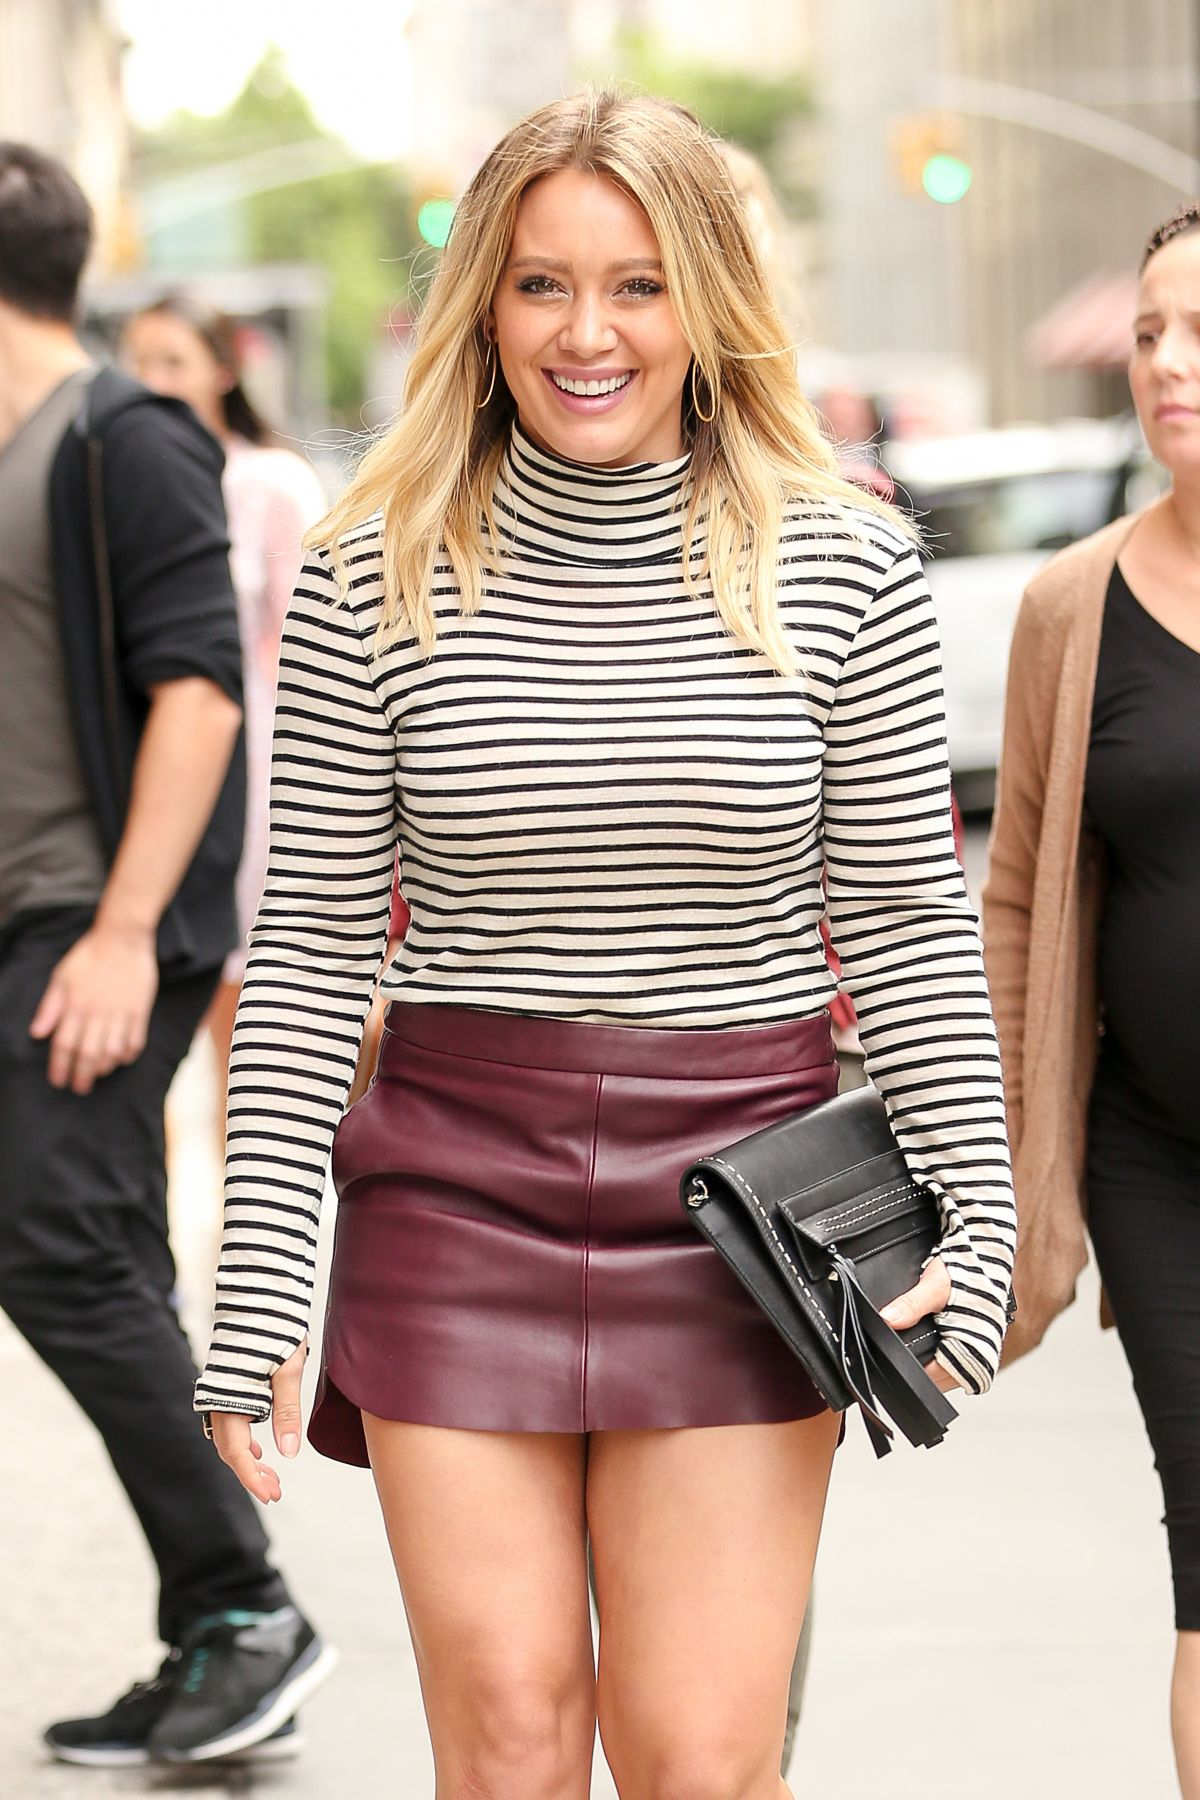 HILARY DUFF Arrives at ABC Kitchen in New York 09/27/2016 - HawtCelebs